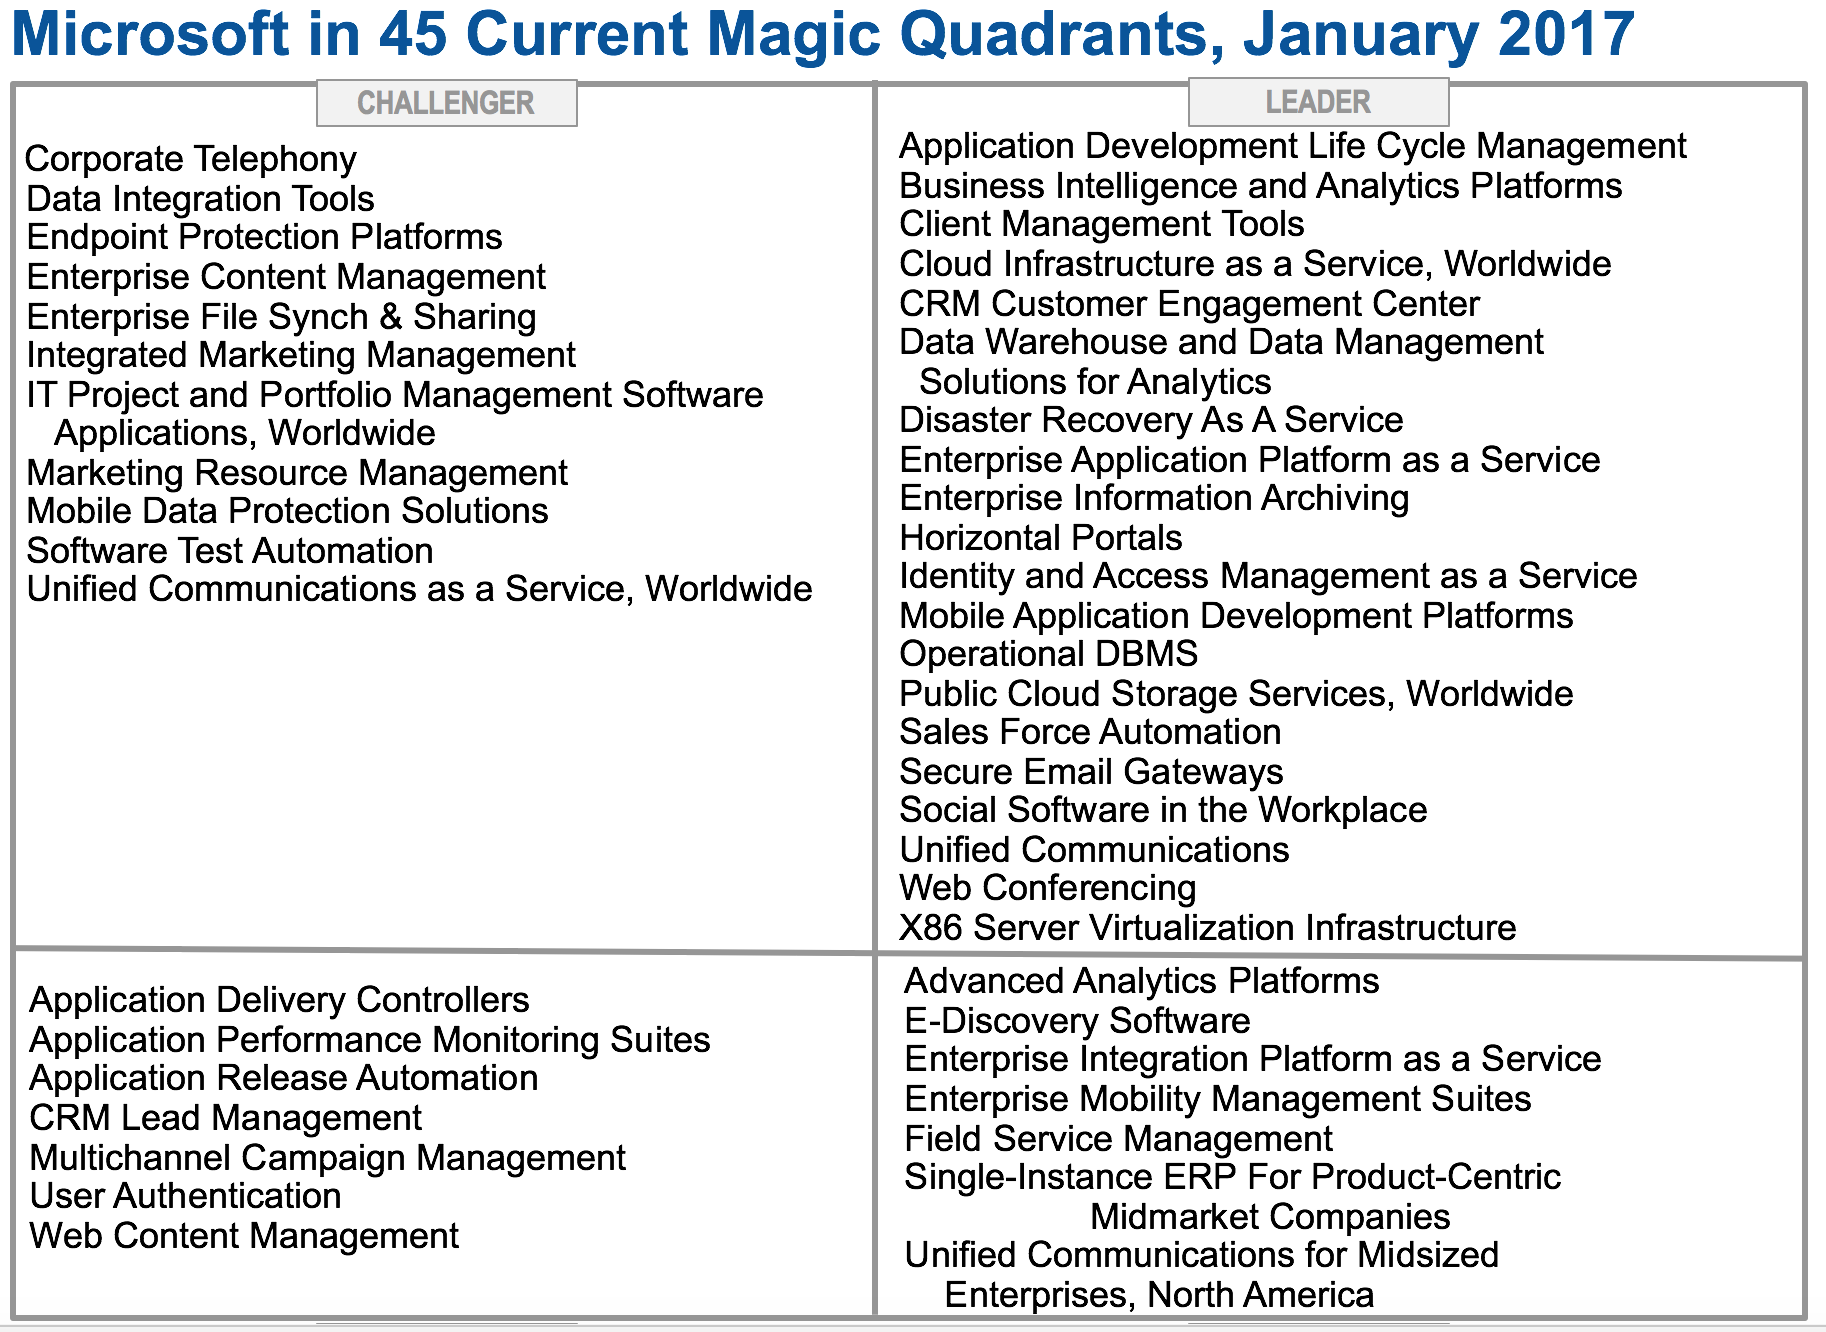 Microsoft Enters 2017 With 45 Offerings in Magic Quadrants - Merv ...